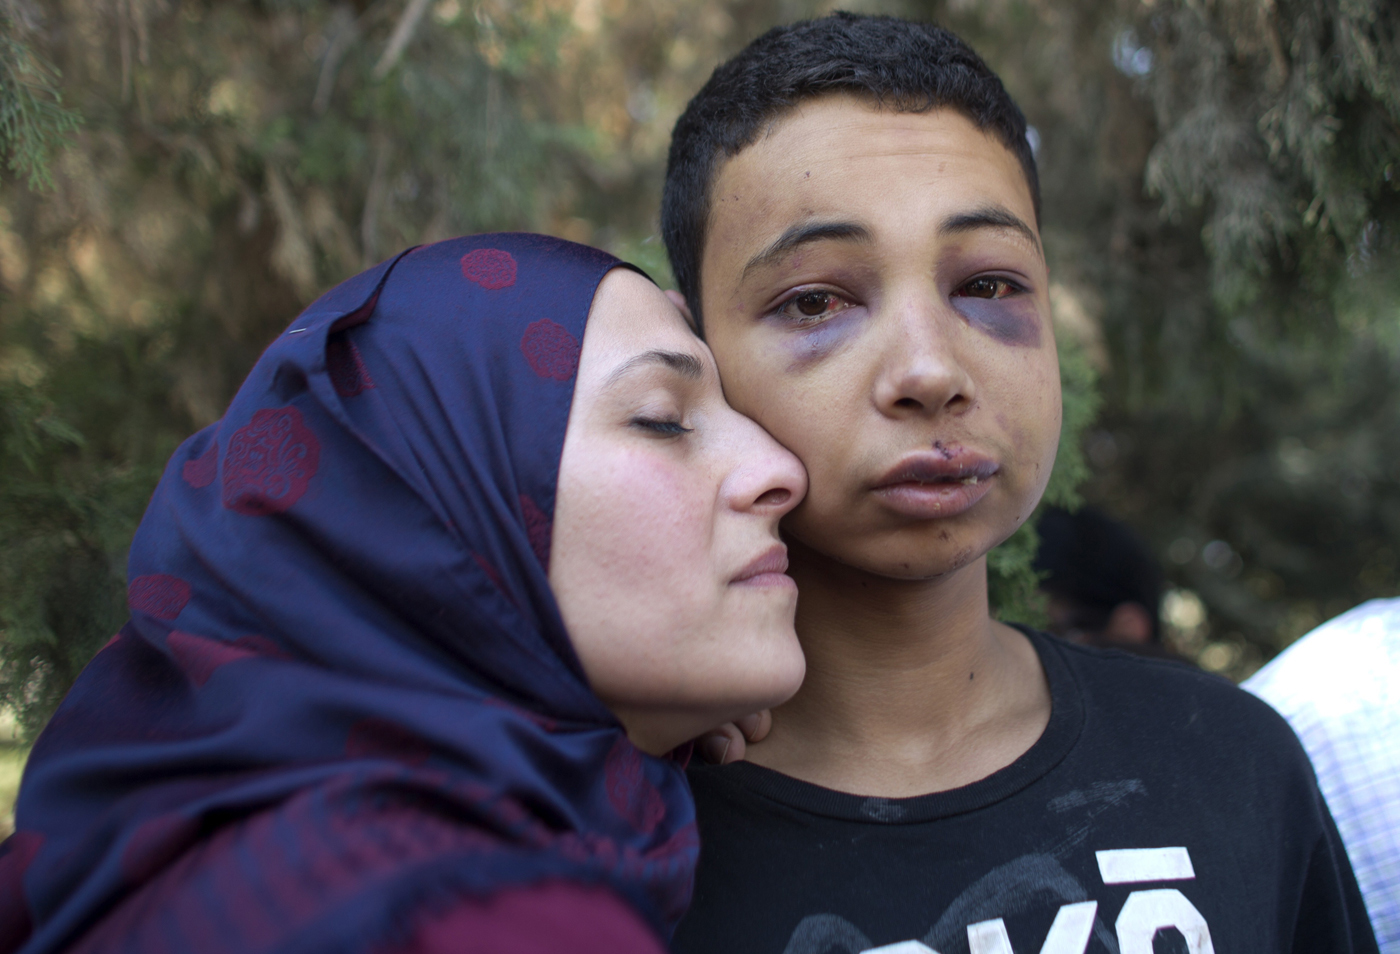 Days later, Palestinian teen Tariq Abu Khdeir was arrested during clashes with Israeli police sparked by the murder of his cousin Mohammad Abu Khder. Tariq was badly beaten before he was arrested by Israeli security forces at a demonstration. This picture was taken when he reunited with his mother — Photo by AFP